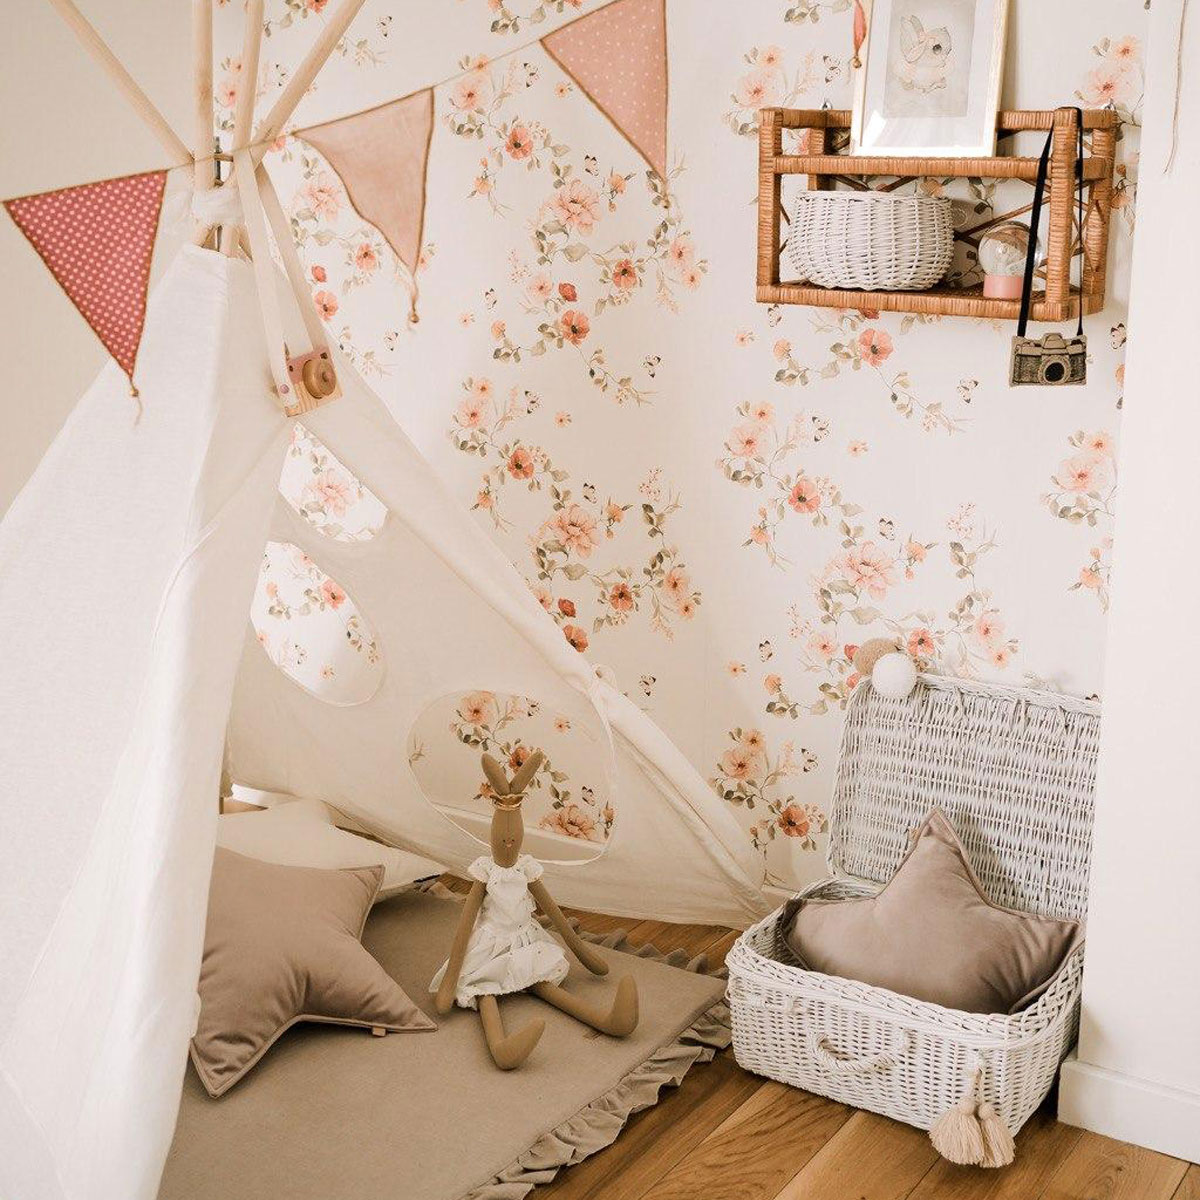 floral-wallpaper 10 Cute Ways to Use Removable Wallpaper for Your Kid's Bedroom